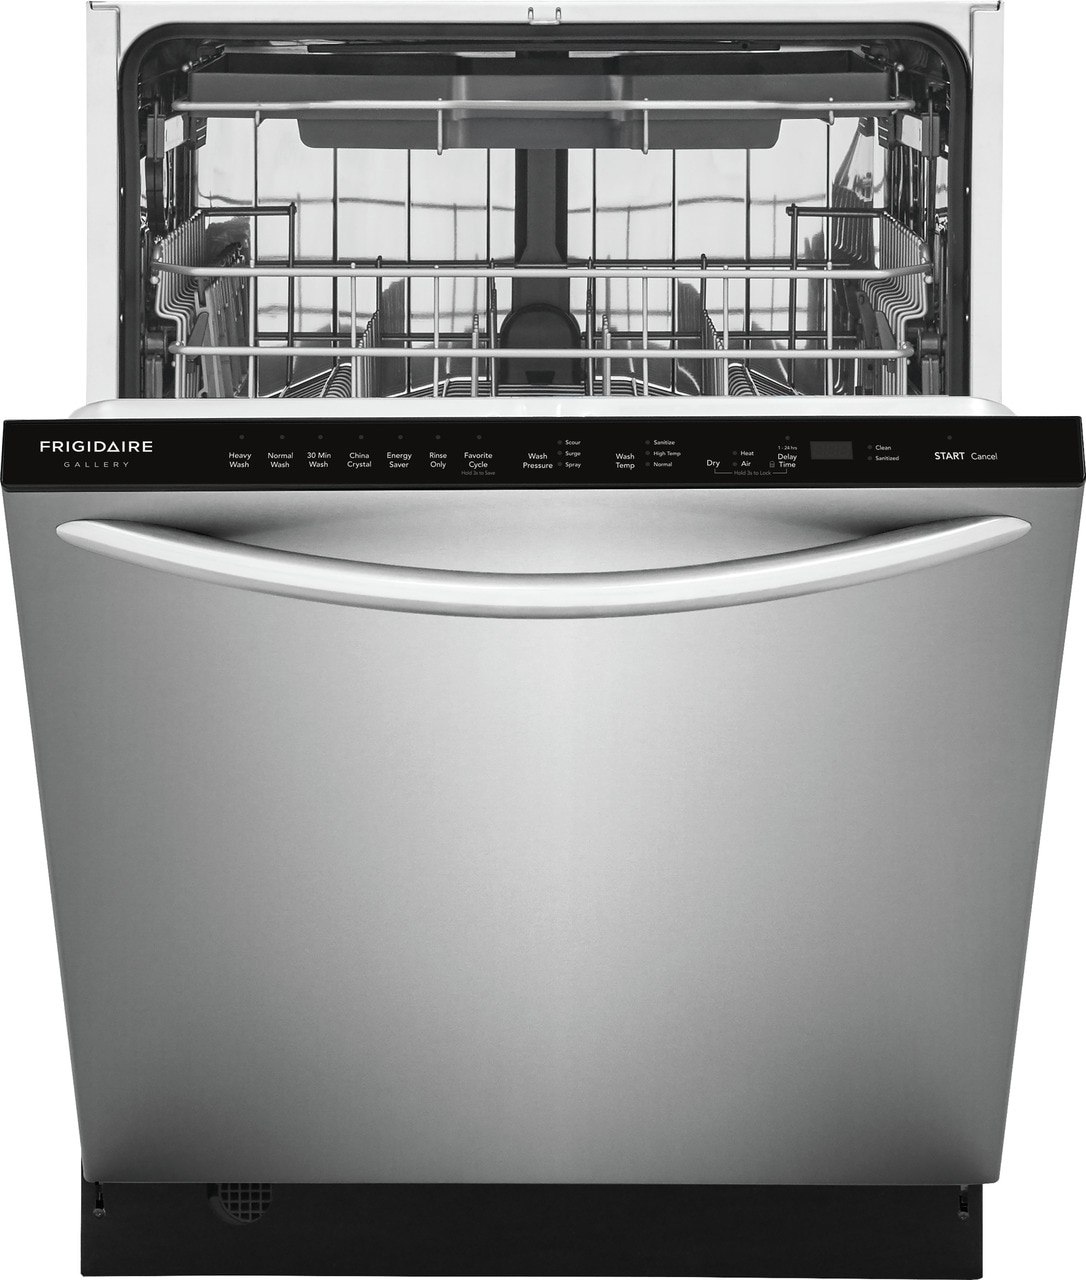 """Model: FGID2479SF 